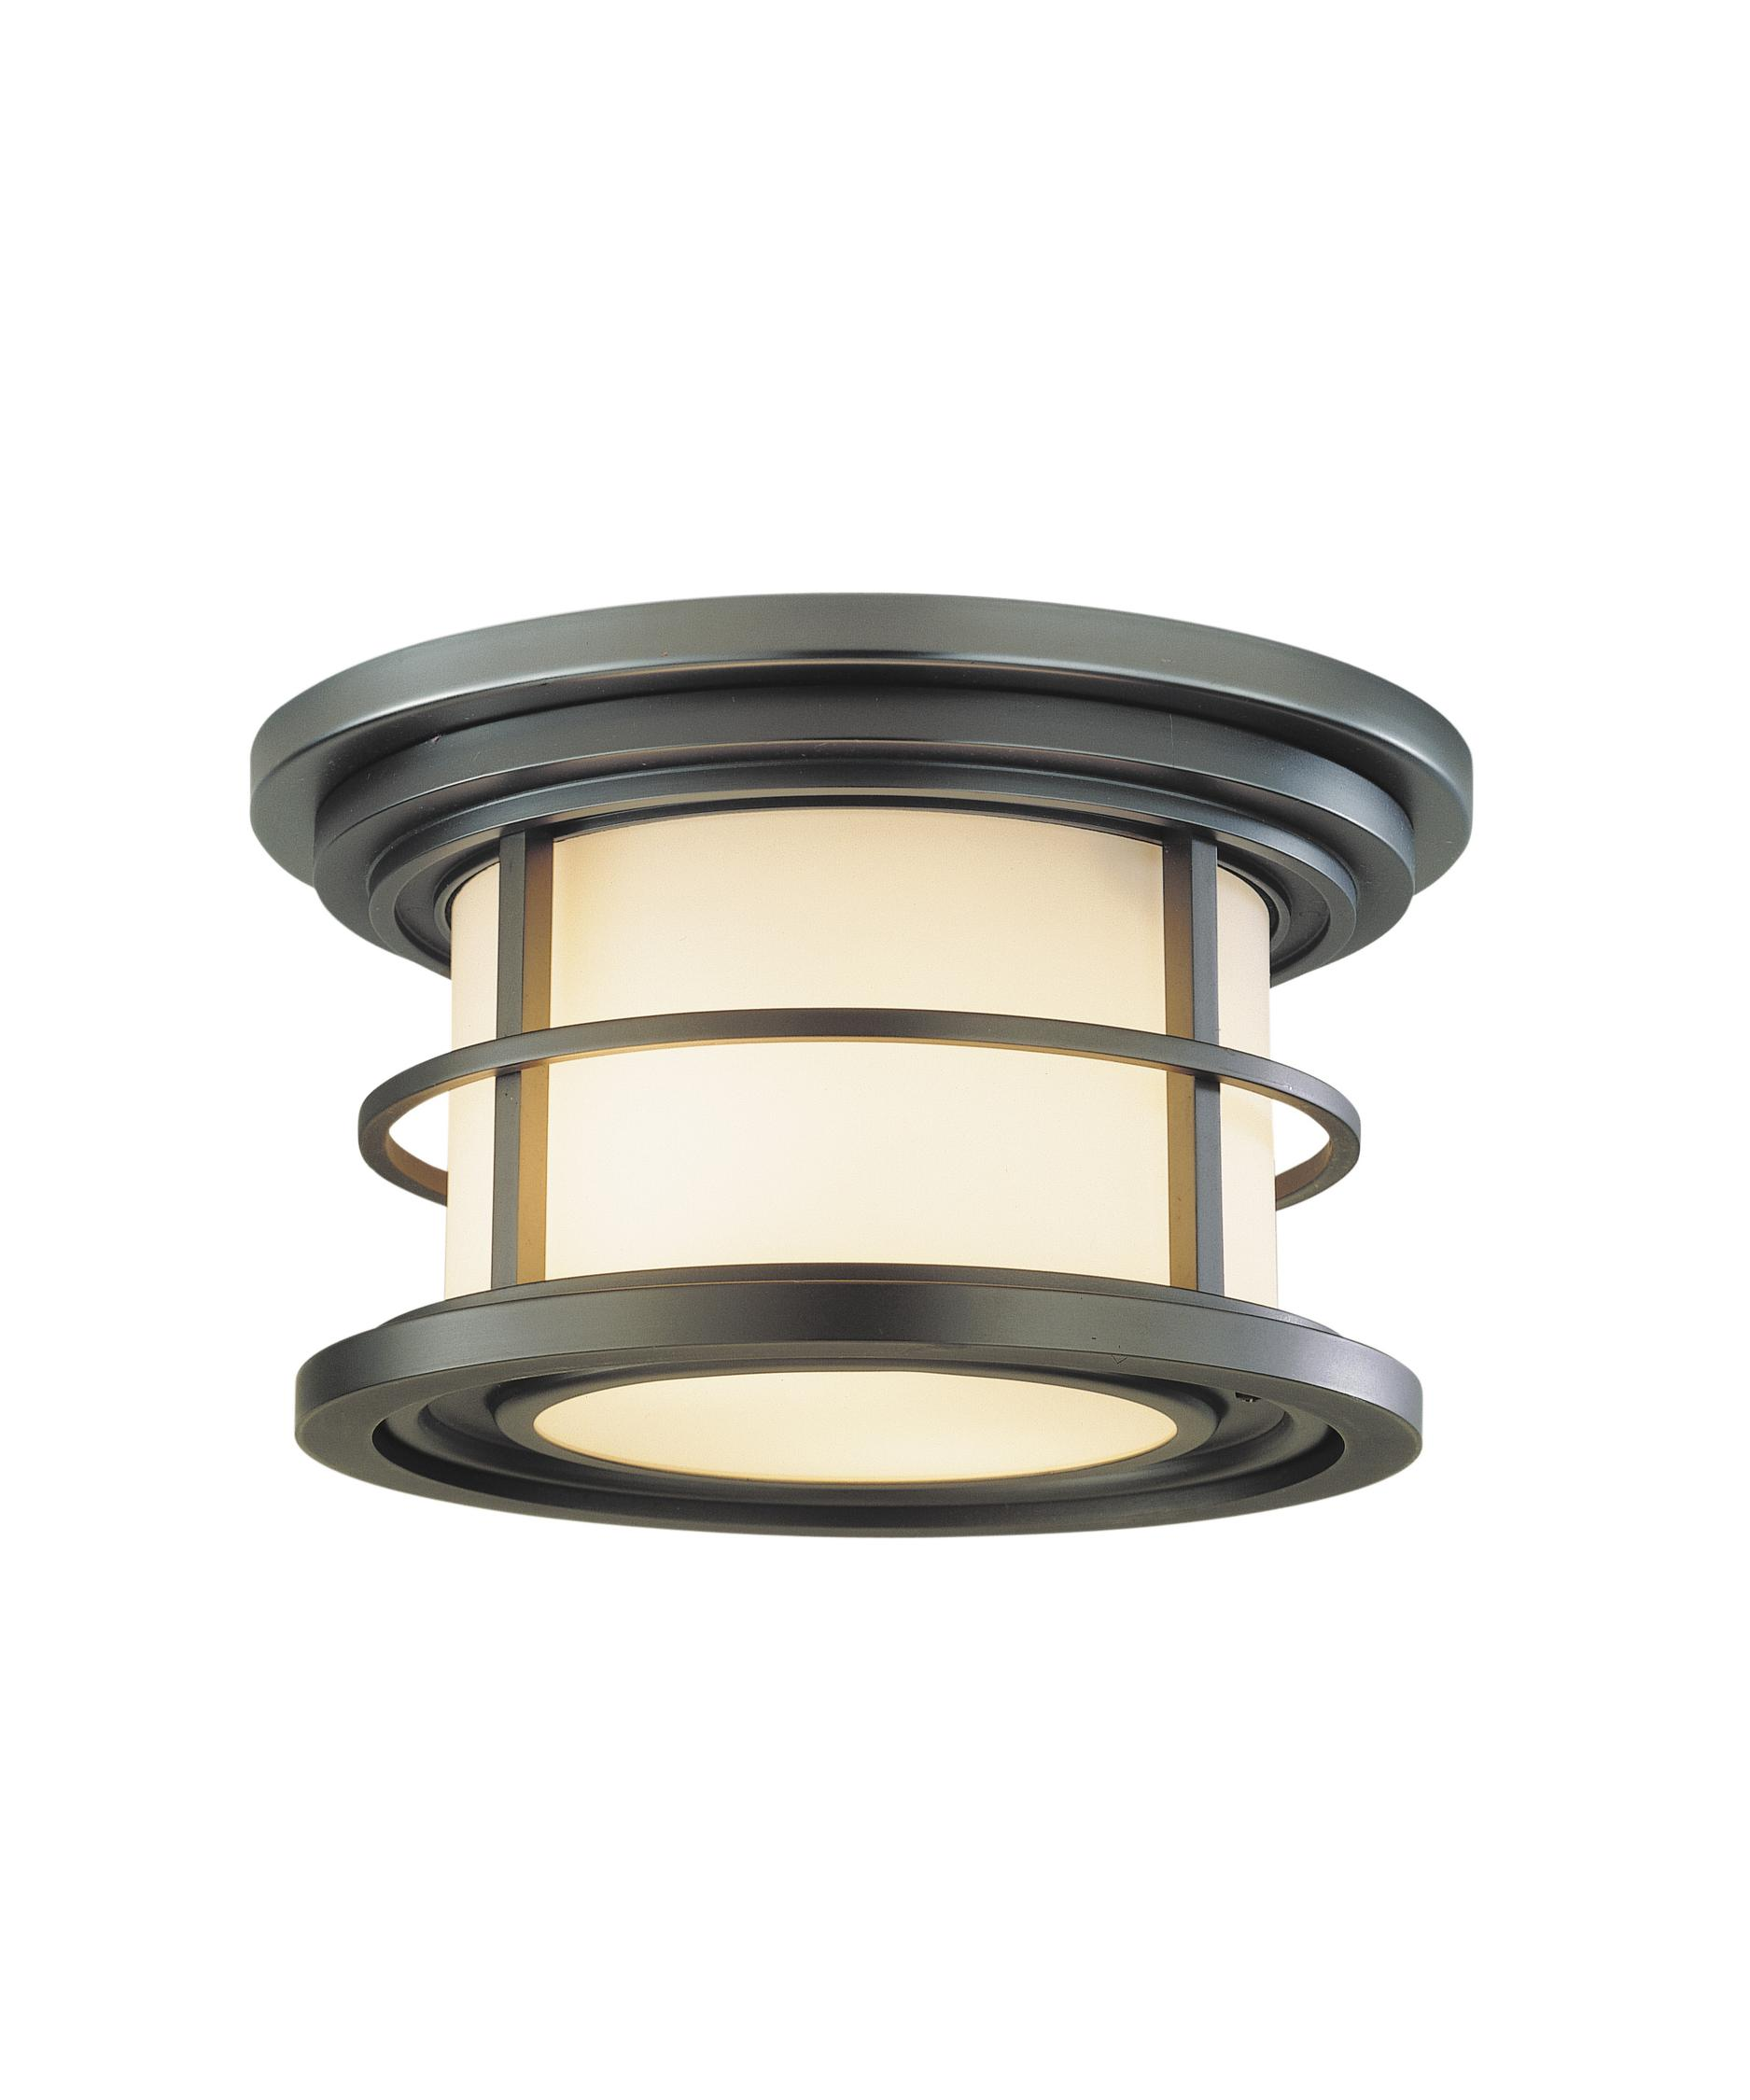 Ceiling Mount Outdoor Light Part - 46: Shown In Burnished Bronze Finish